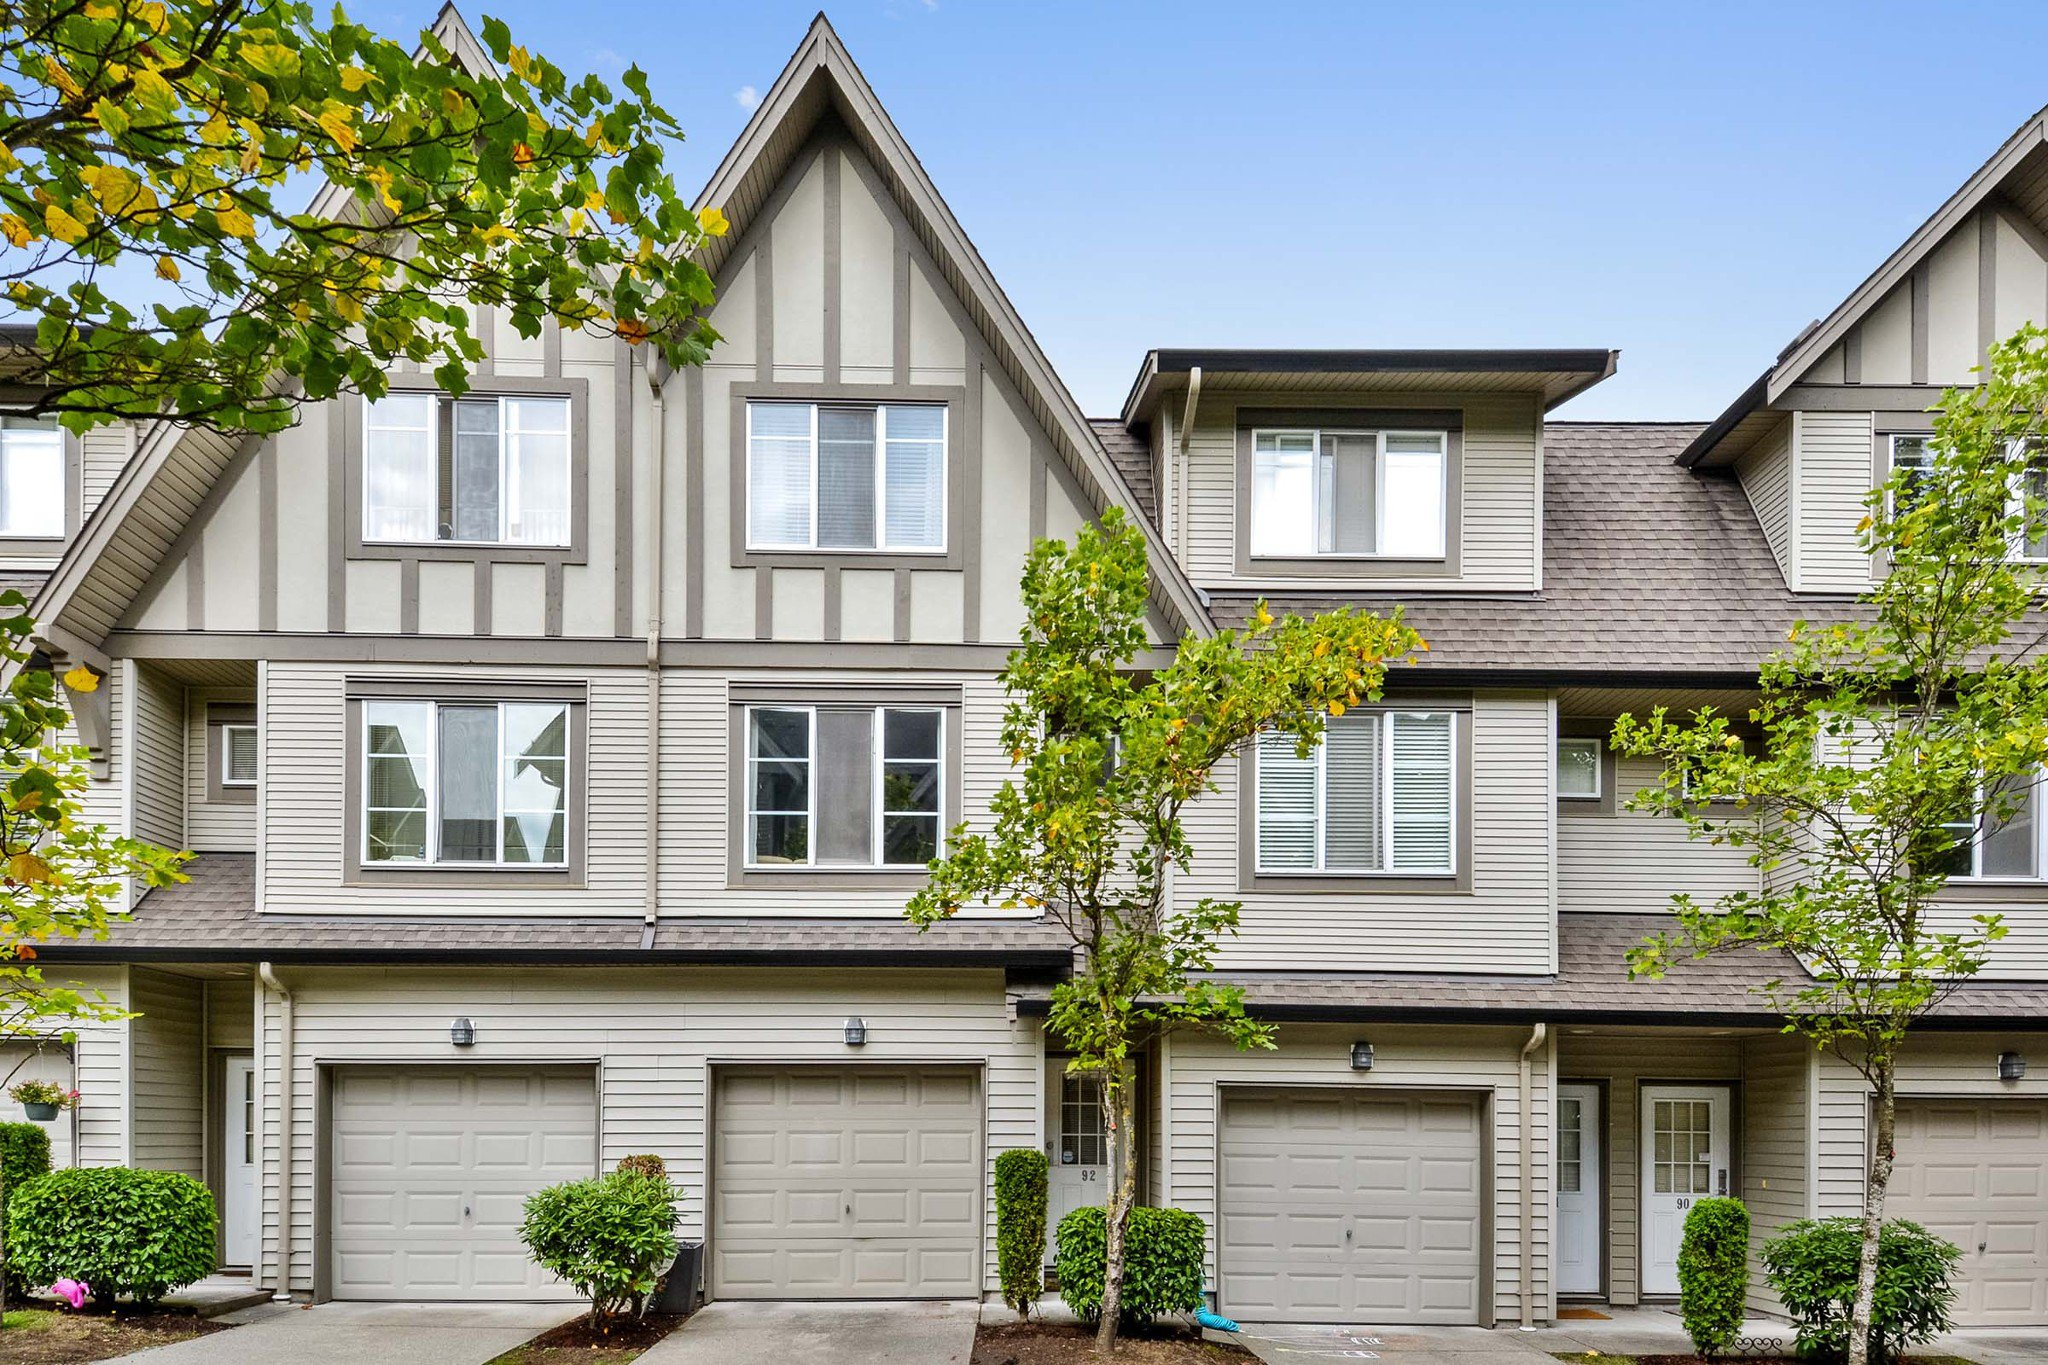 """Main Photo: 92 15175 62A Avenue in Surrey: Sullivan Station Townhouse for sale in """"Brooklands"""" : MLS®# R2305712"""